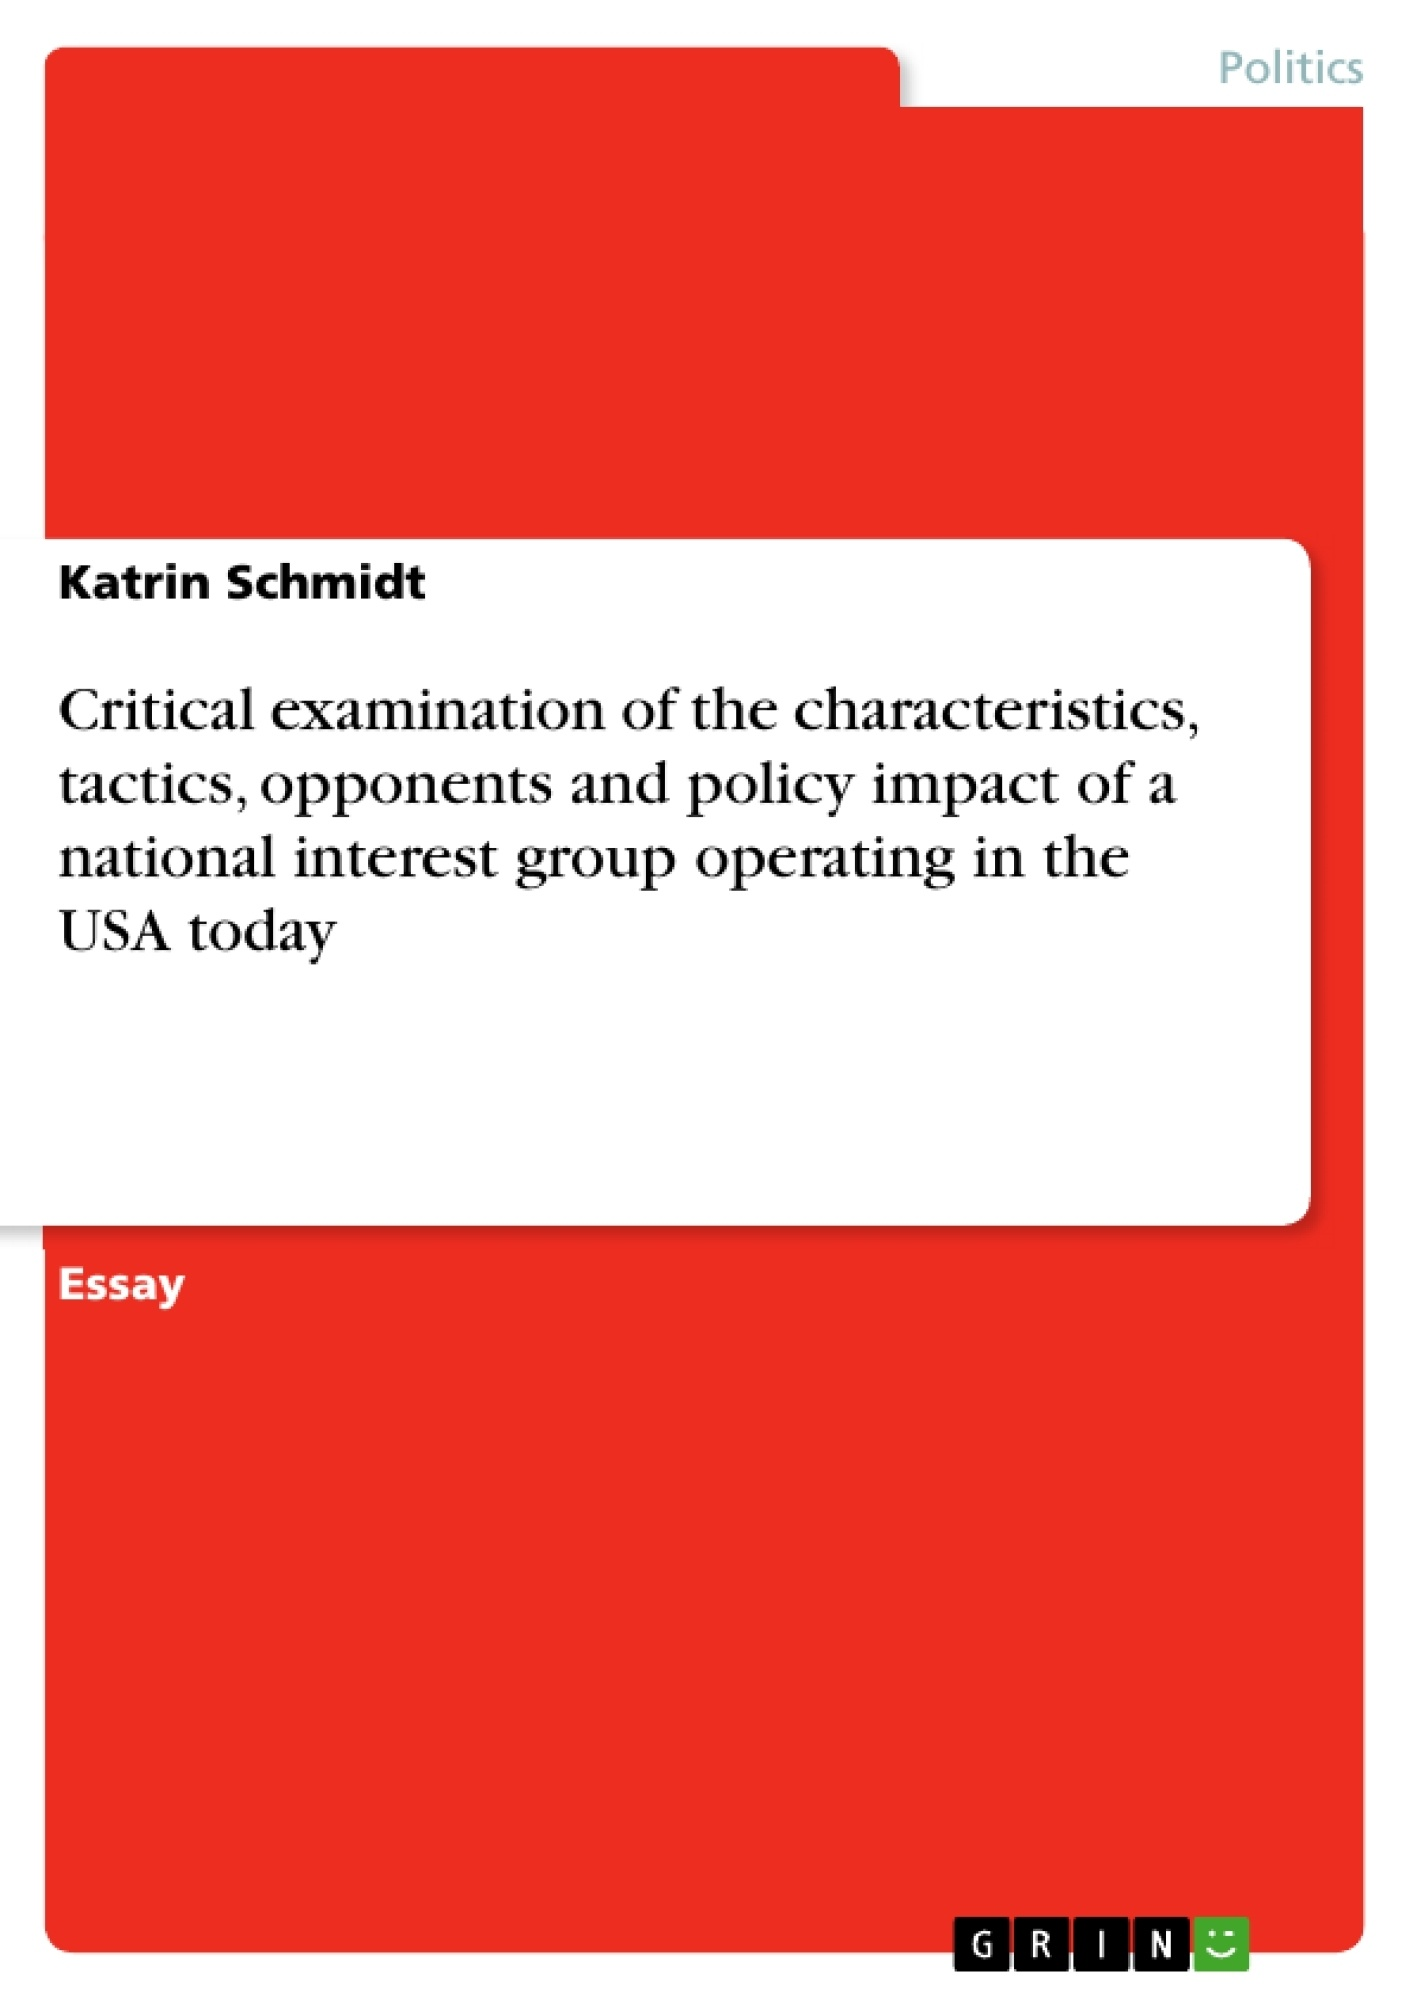 Title: Critical examination of the characteristics, tactics, opponents and policy impact of a national interest group operating in the USA today